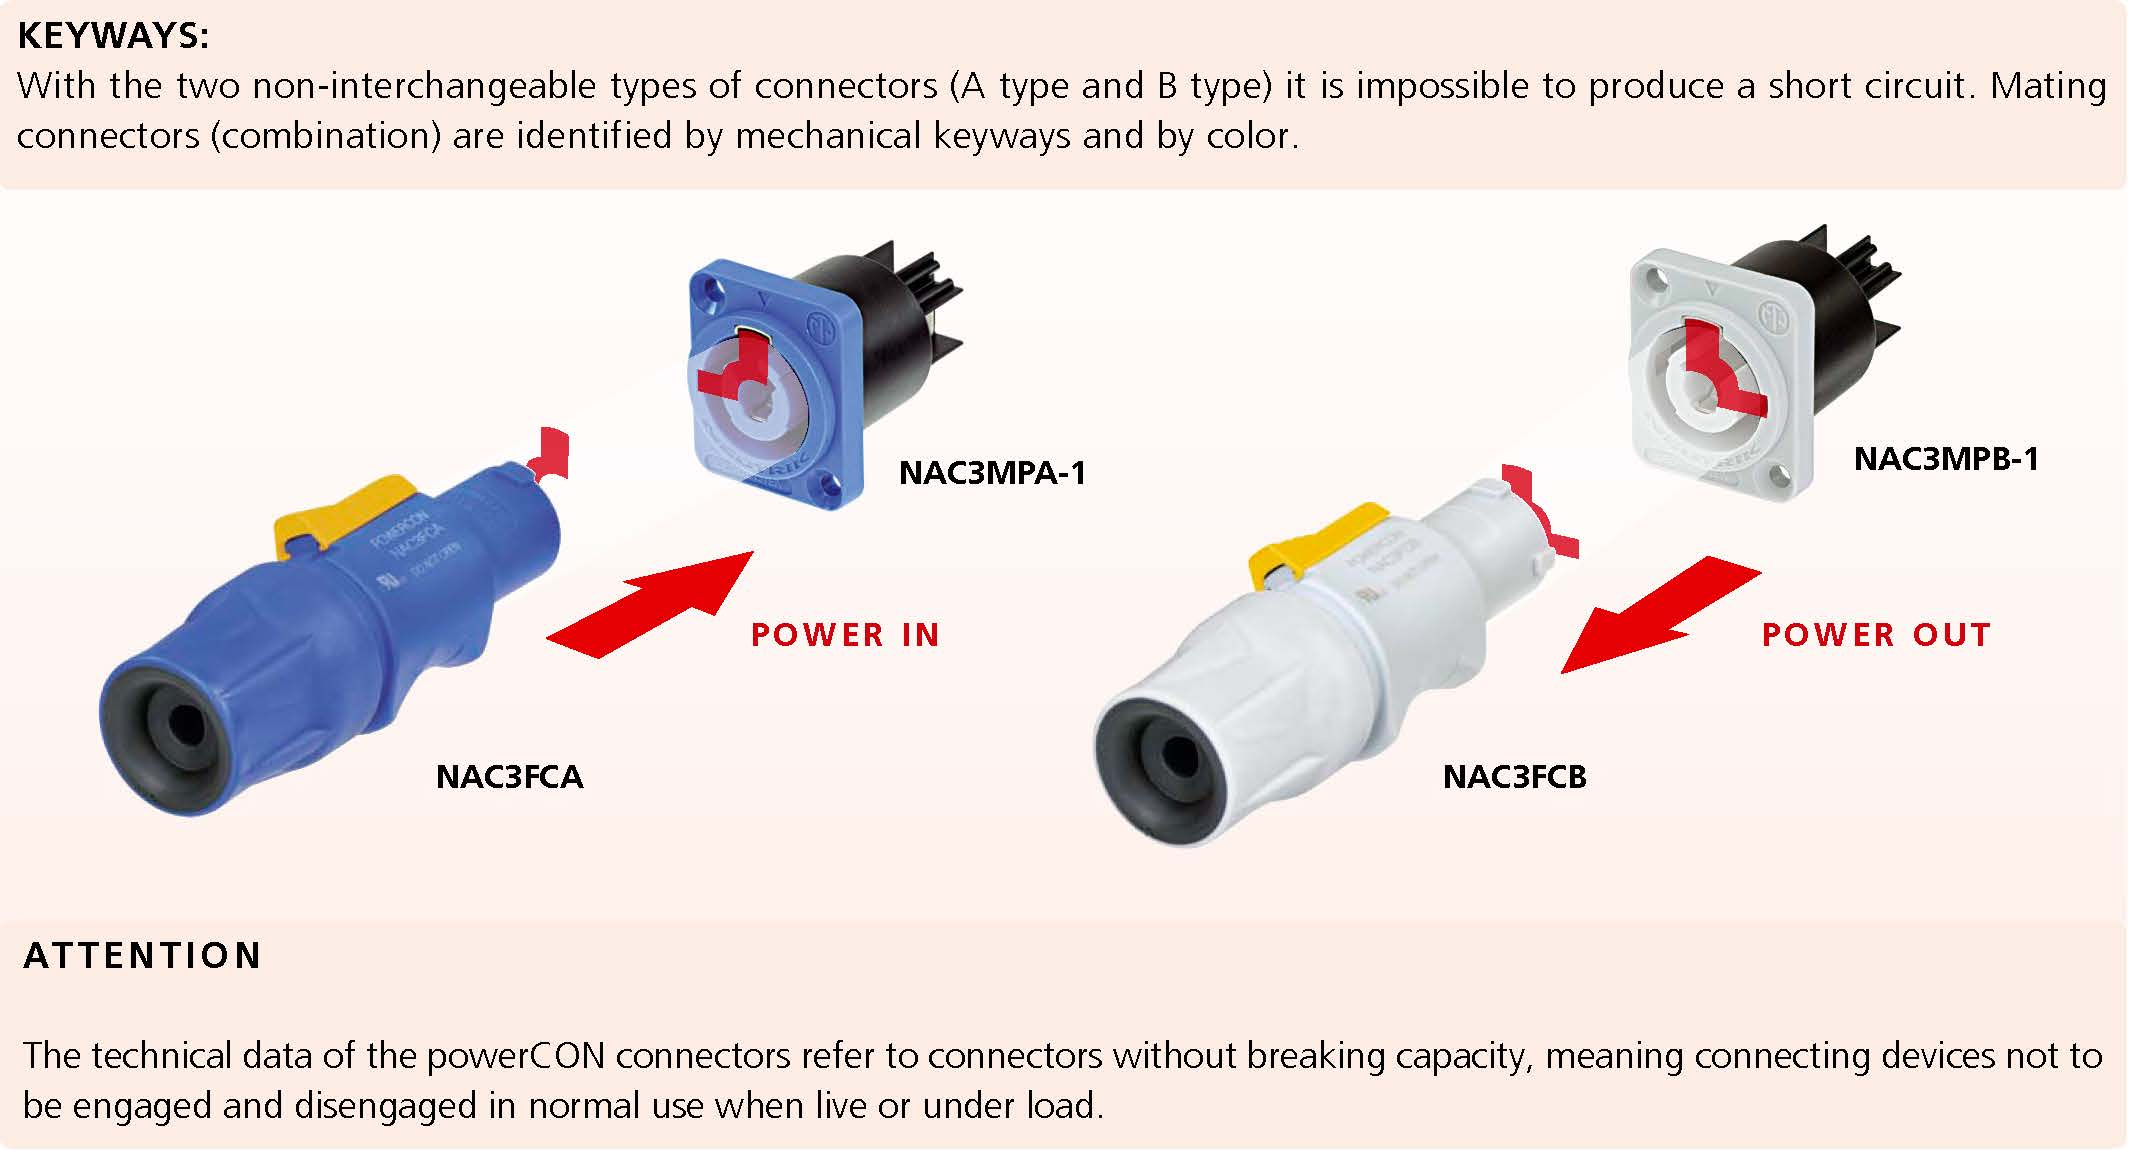 ProductGuide-SectionCircularConnectors.jpg